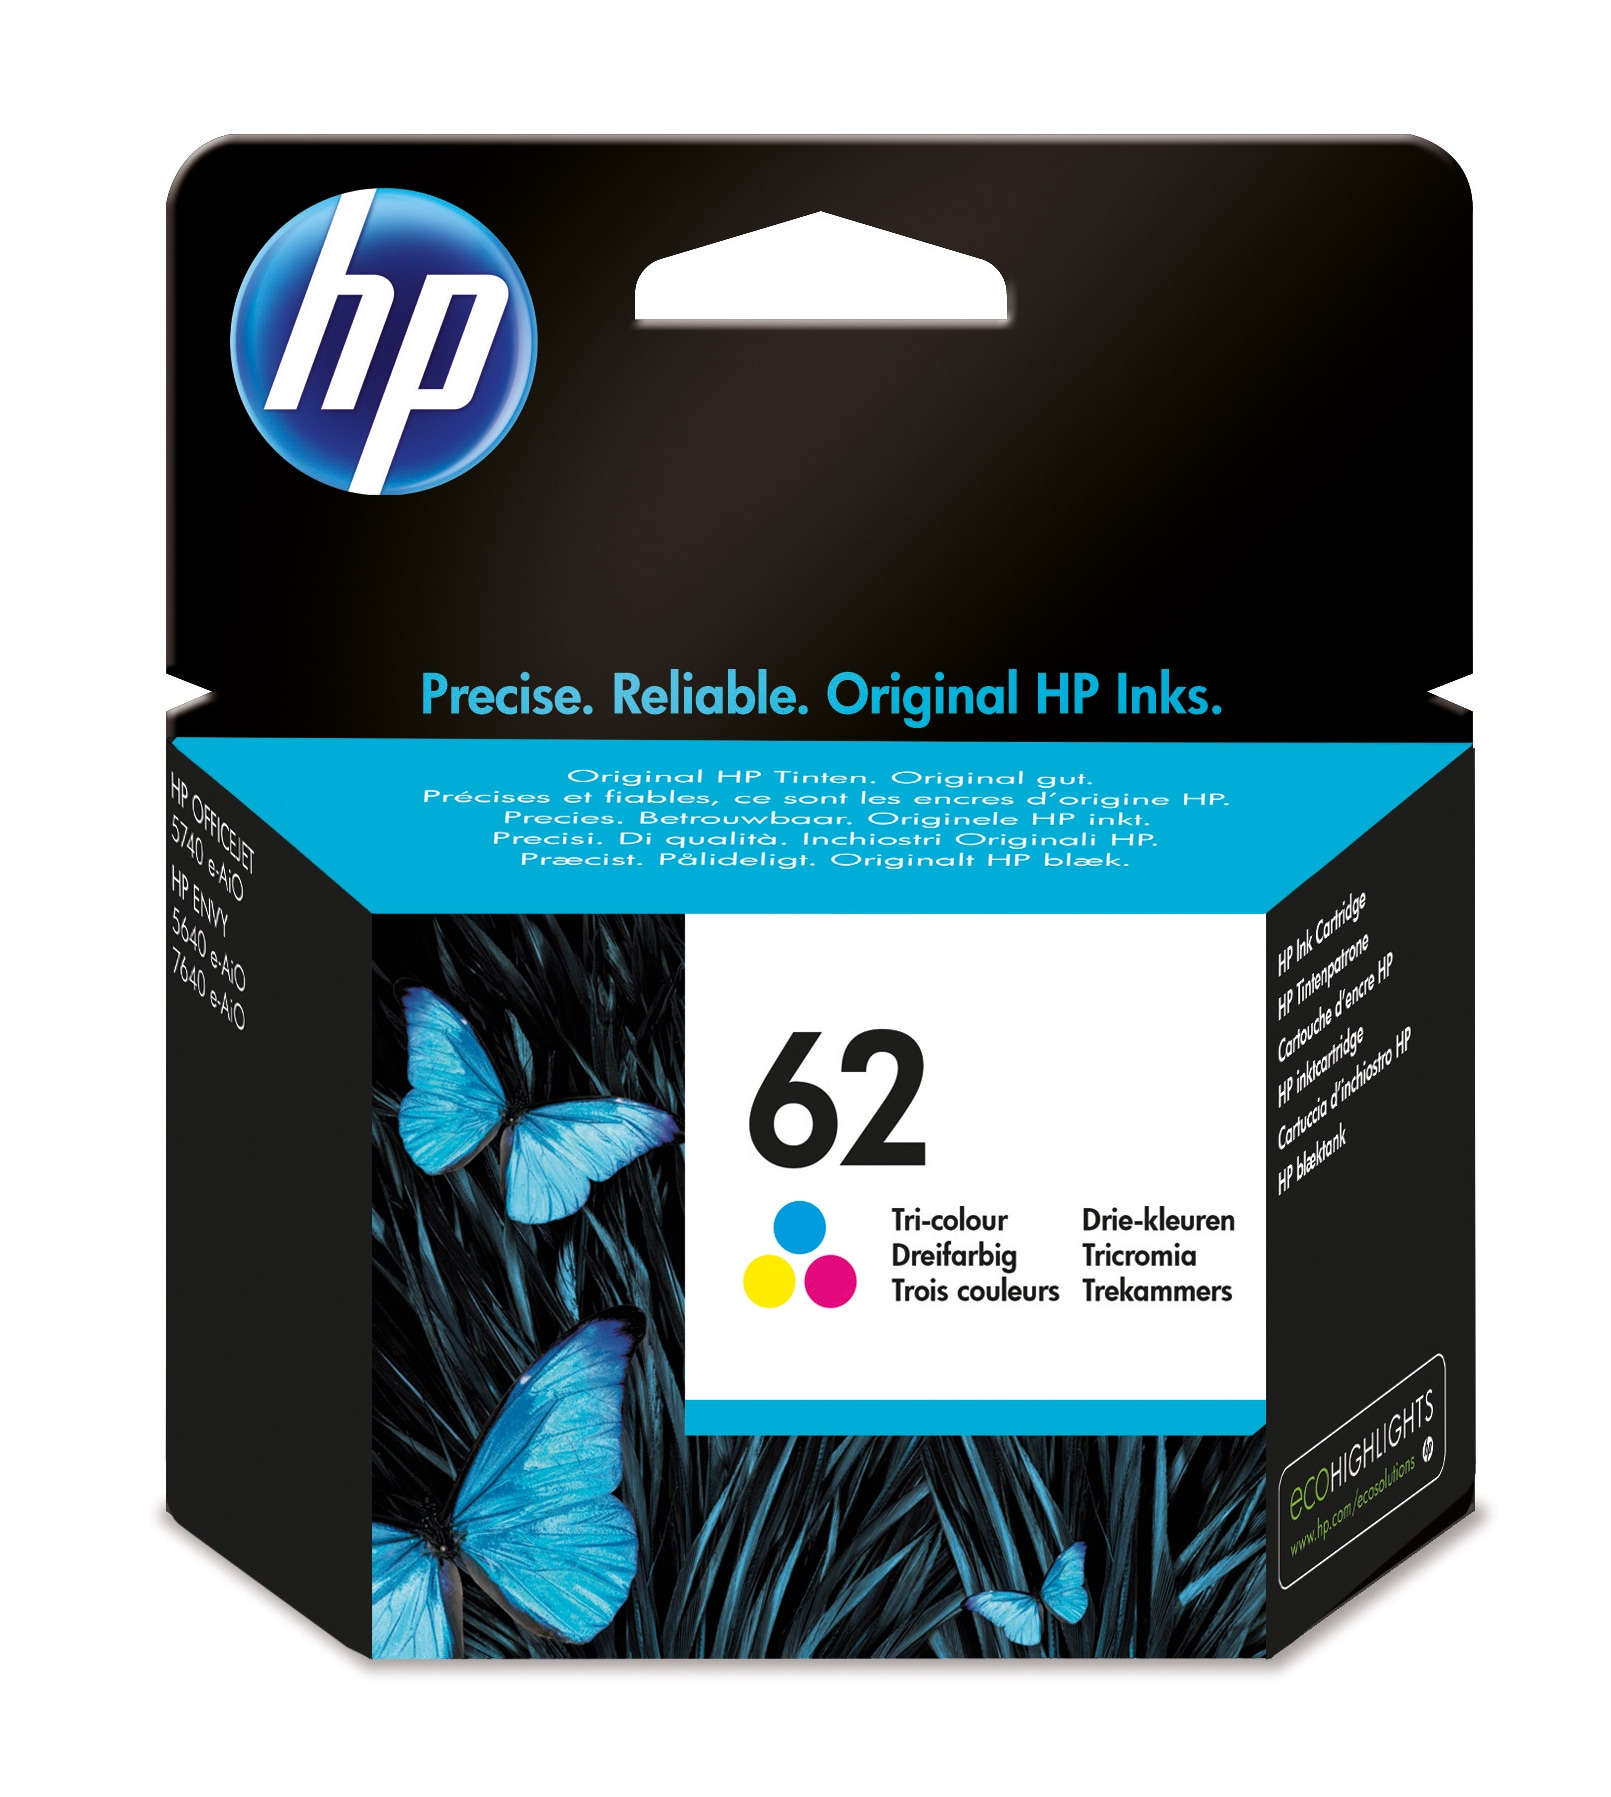 Hp - Inkjet Supply (pl1n) Mvs    Ink Cartridge 62 Tri-color          Tri-color 62                        C2p06ae#uus